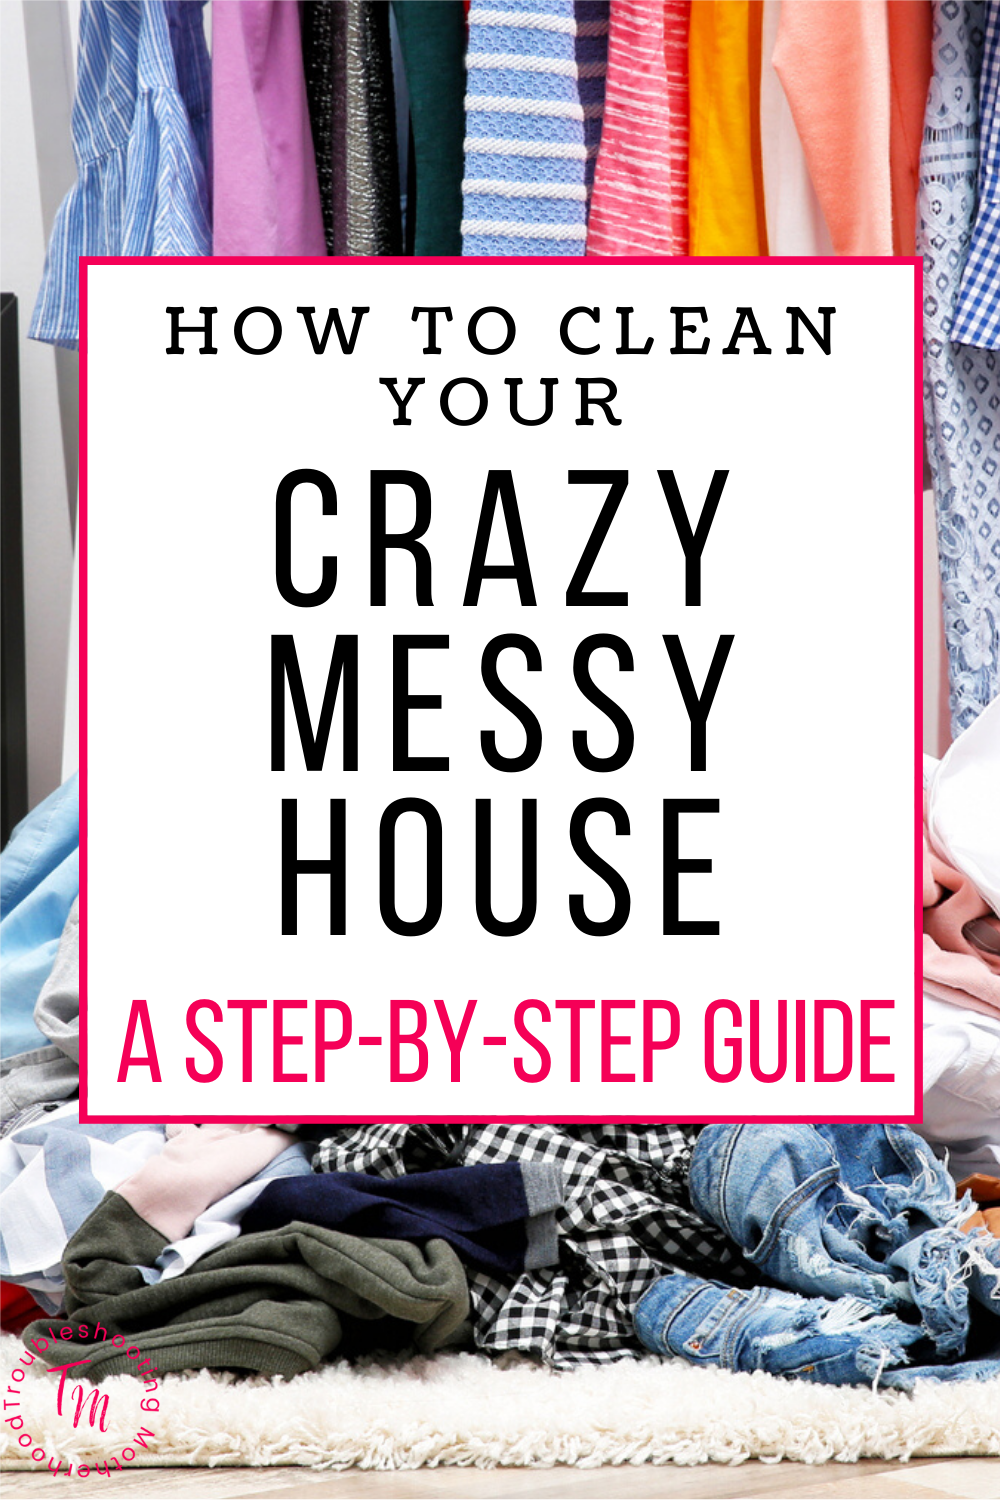 How to Clean a Messy House: A Step by Step Guide When You're Overwhelmed - Troubleshooting Motherhood